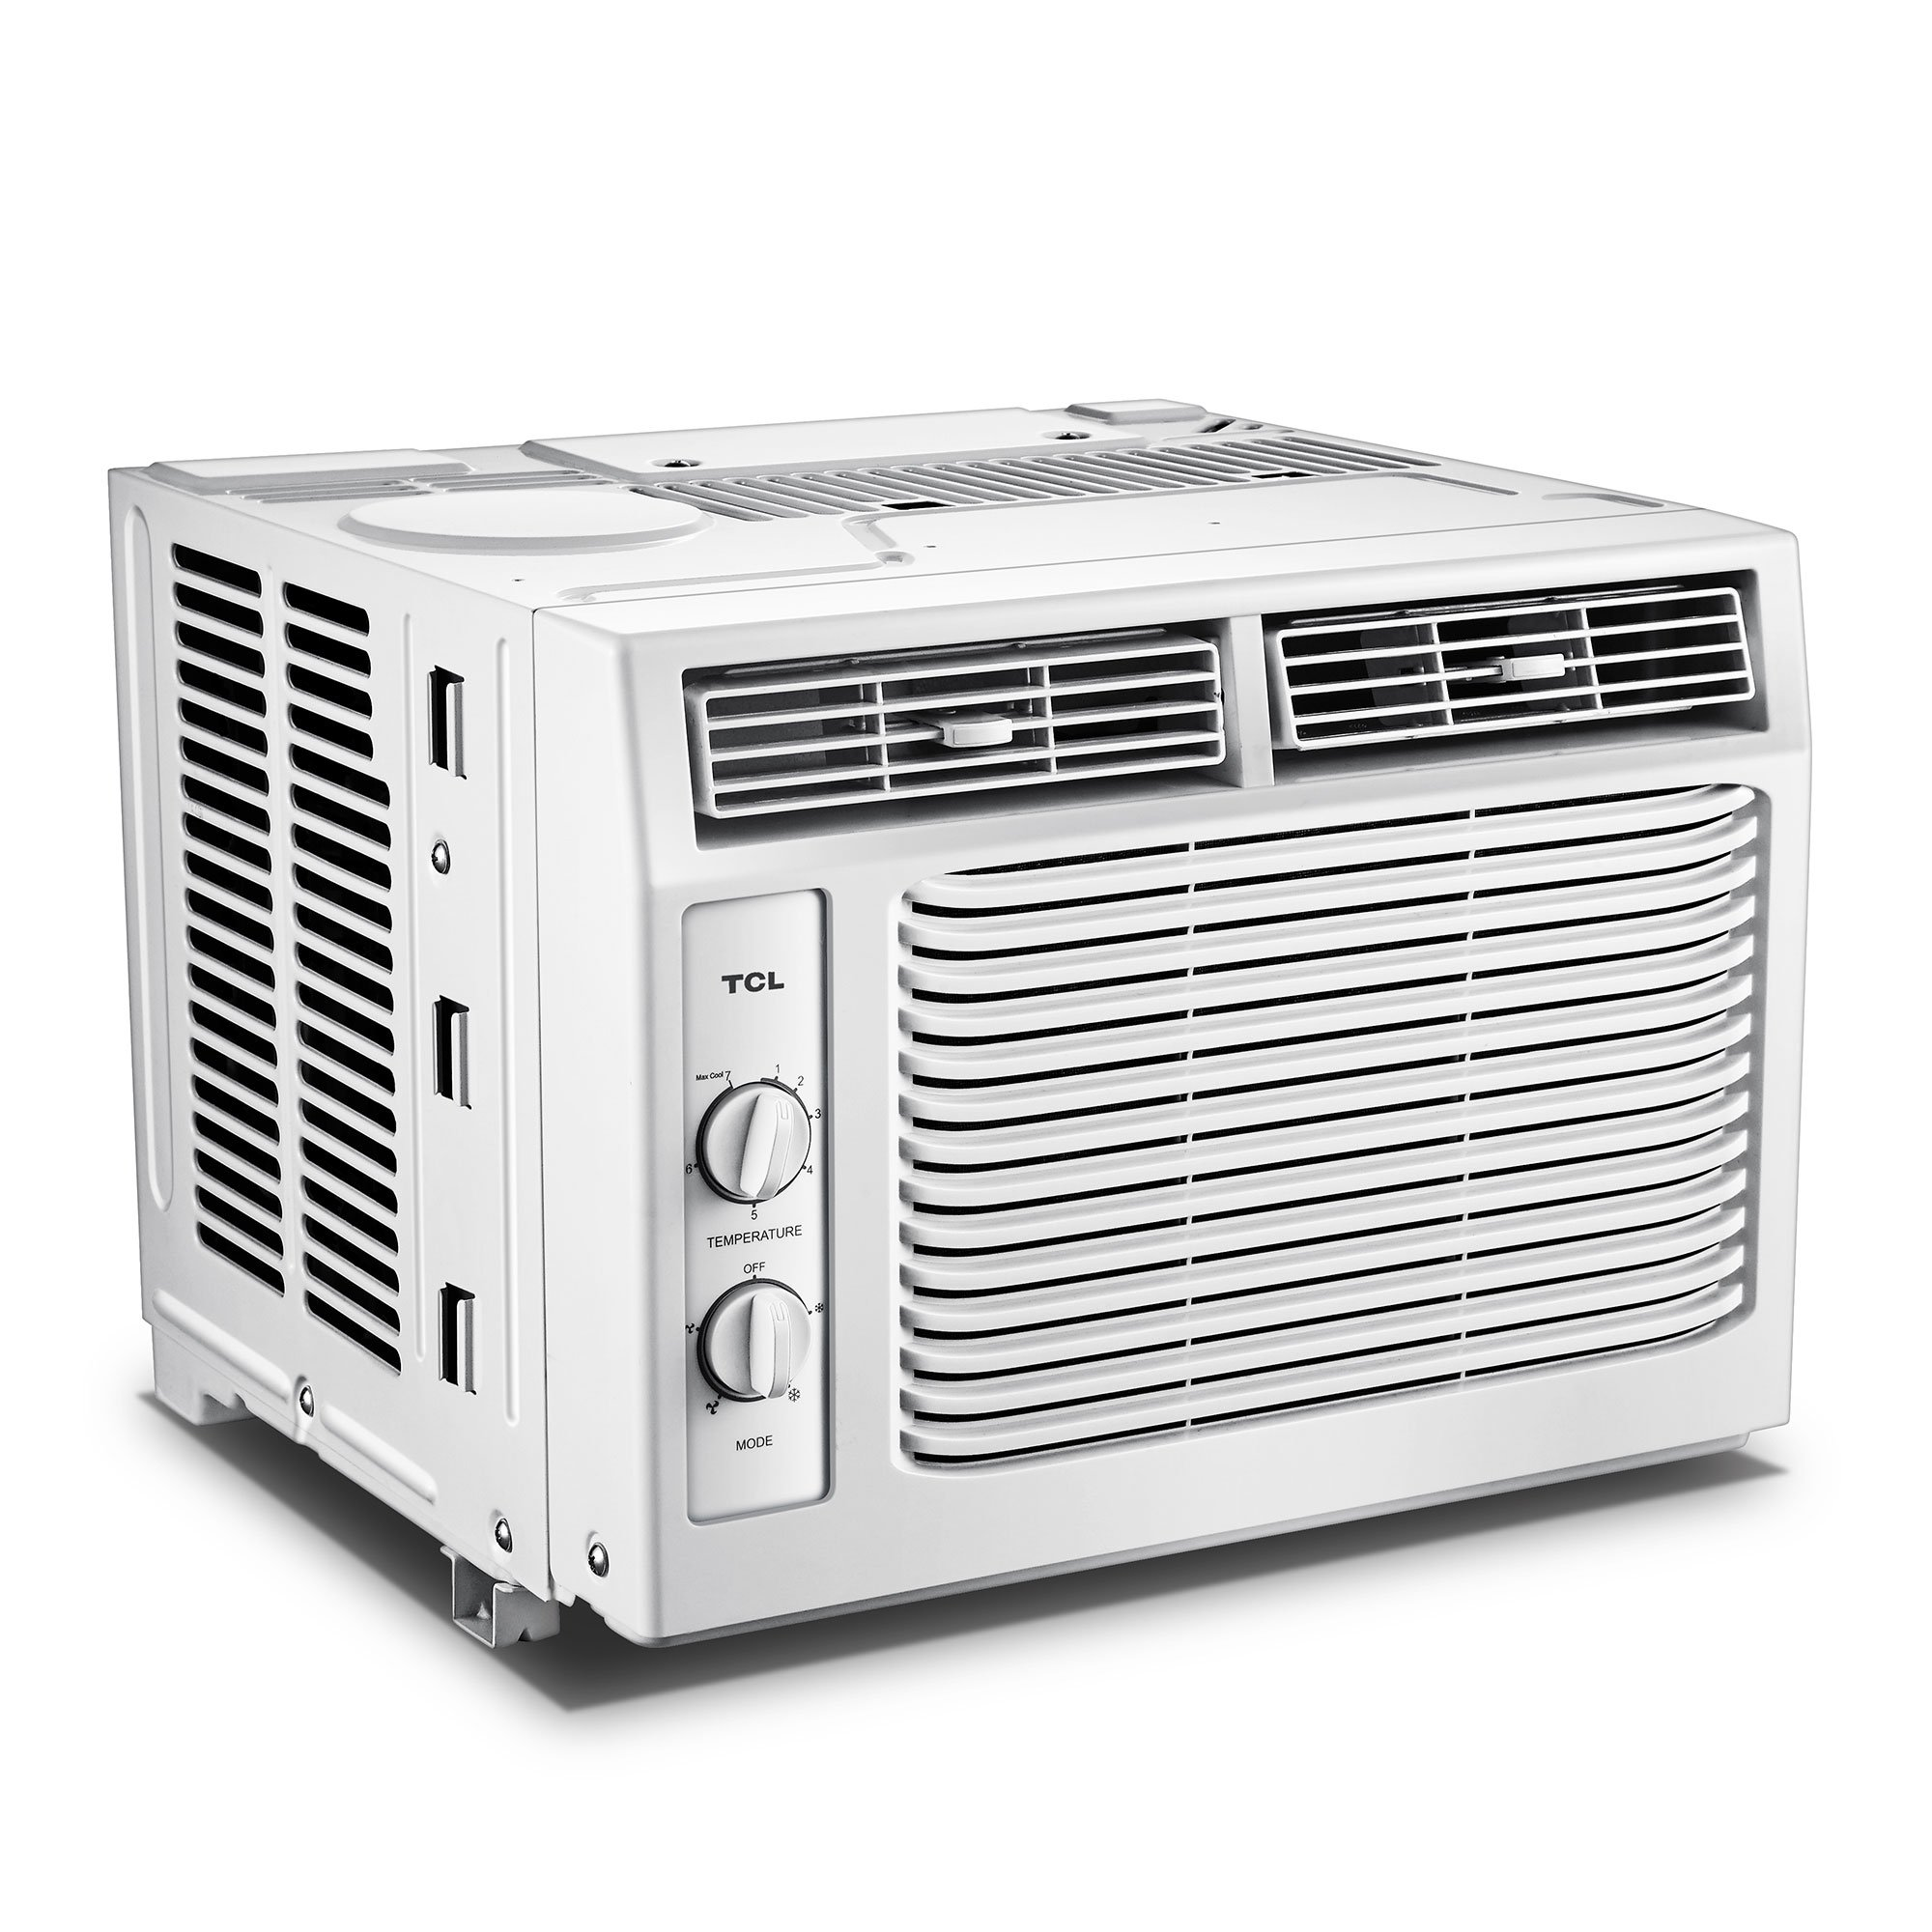 TCL Home Appliances 5,000 BTU 2 Speed Window Air Conditioner AC Unit (2 Pack)